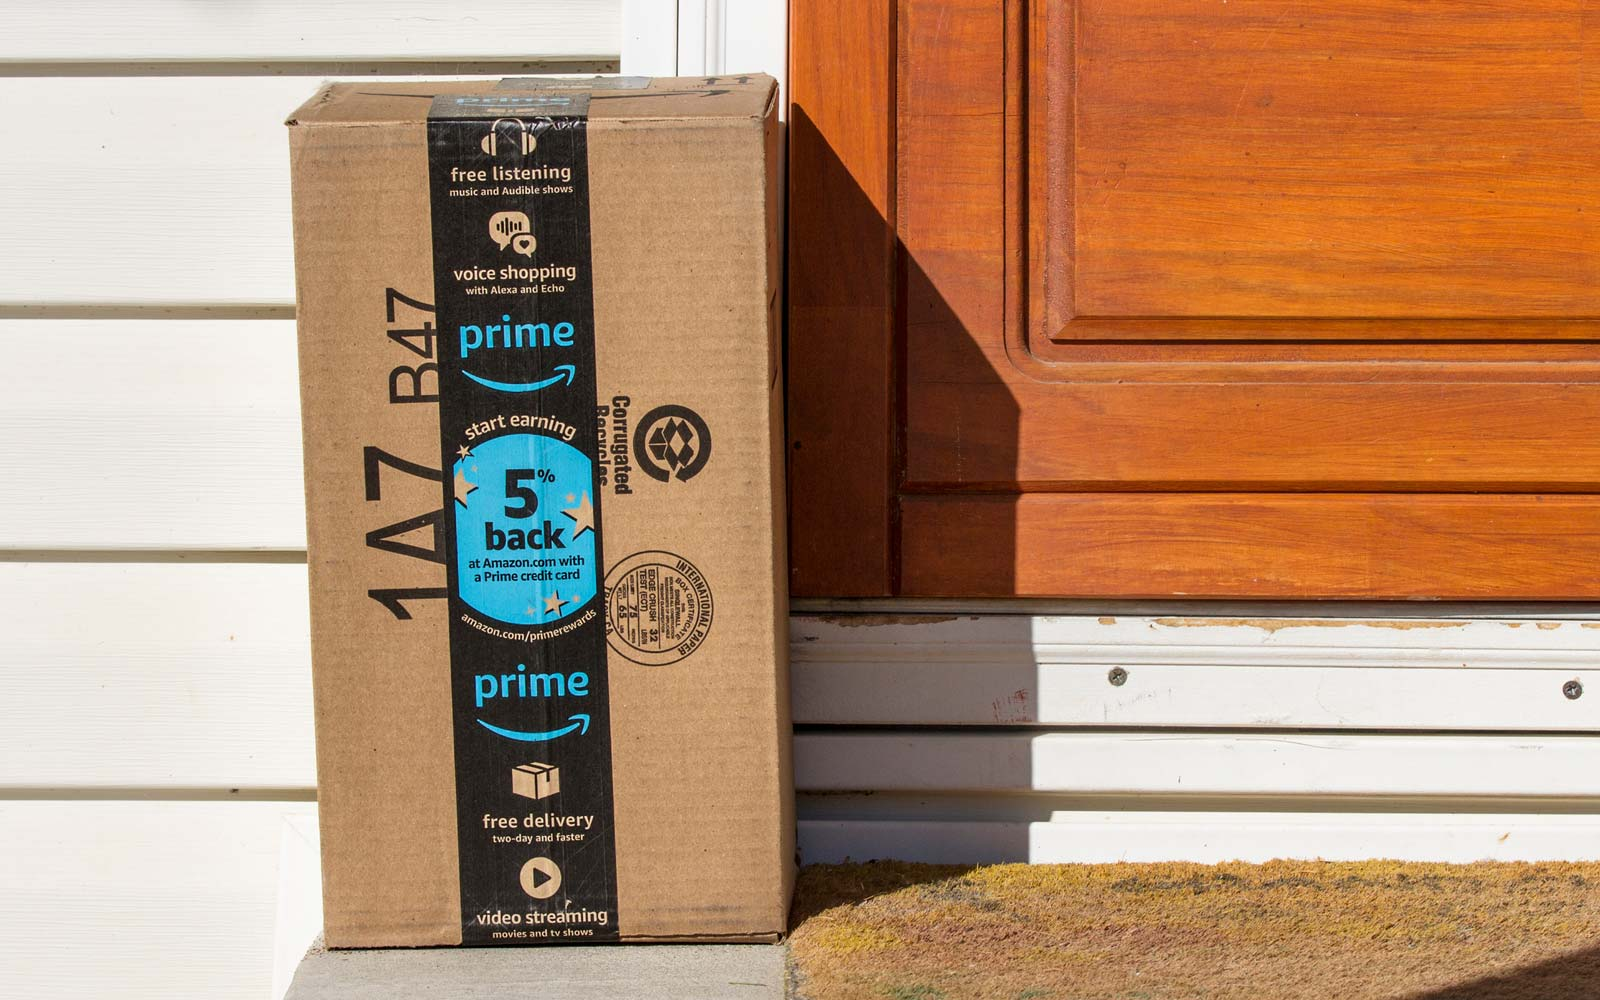 Amazon package that was just delivered to an amazon prime member